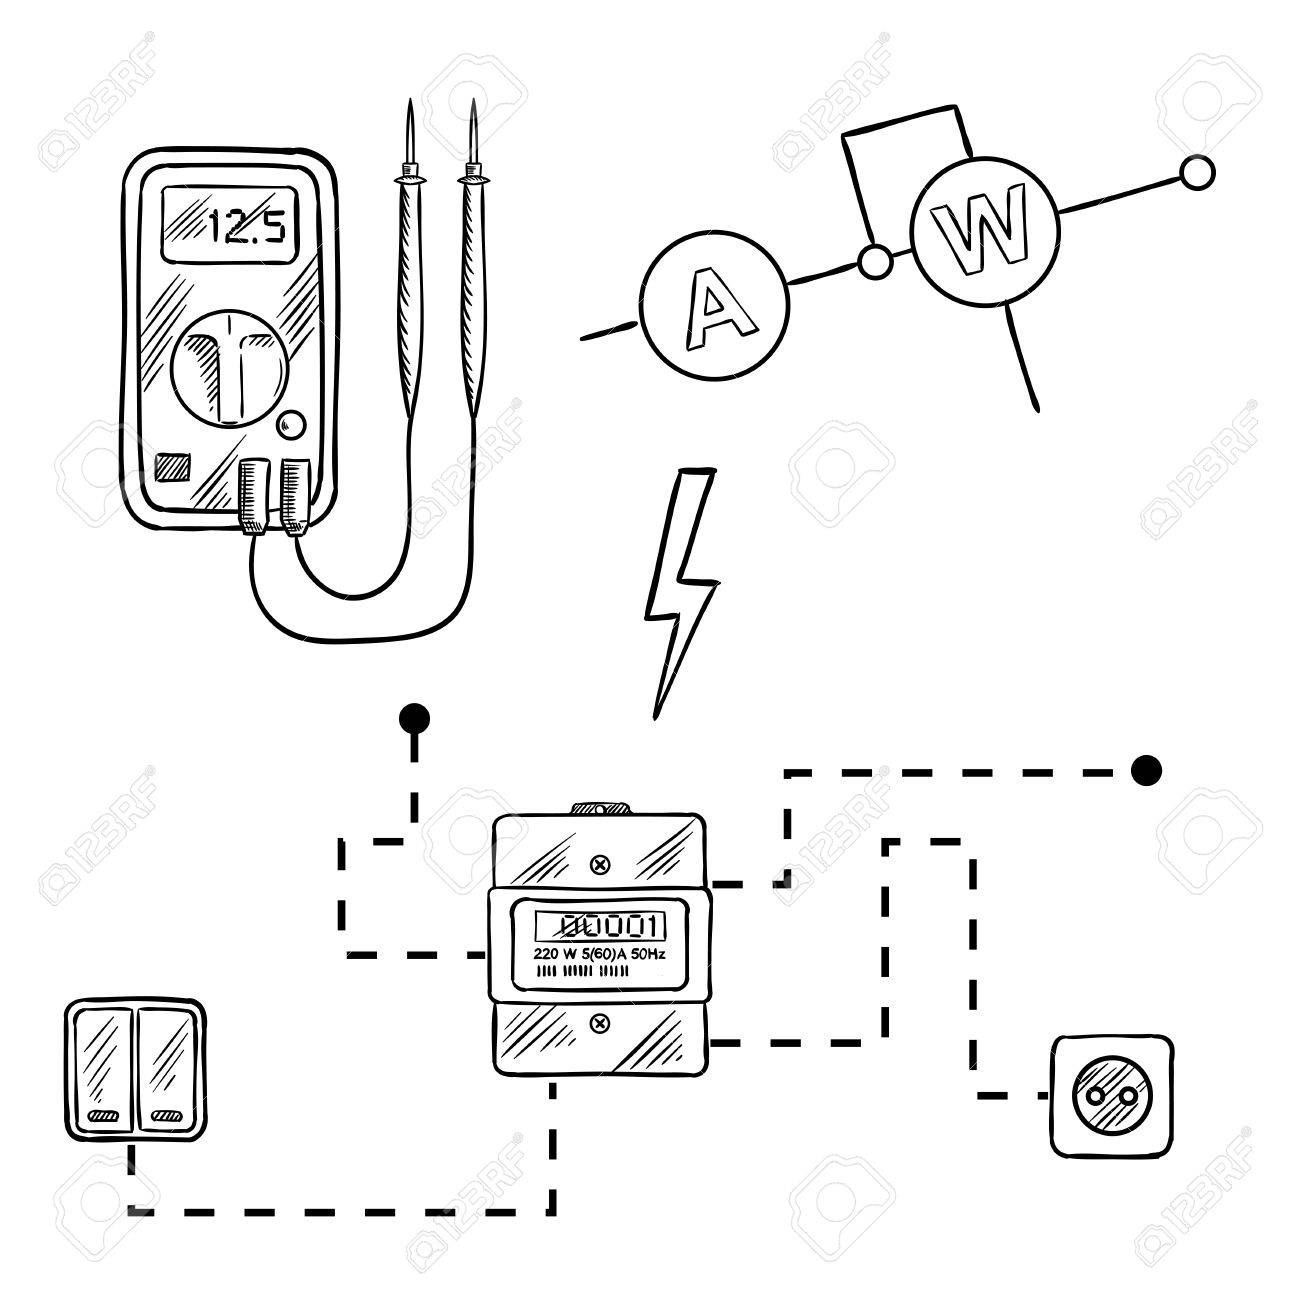 hight resolution of digital voltmeter electricity meter with socket and switches electrical circuit diagram sketch icons